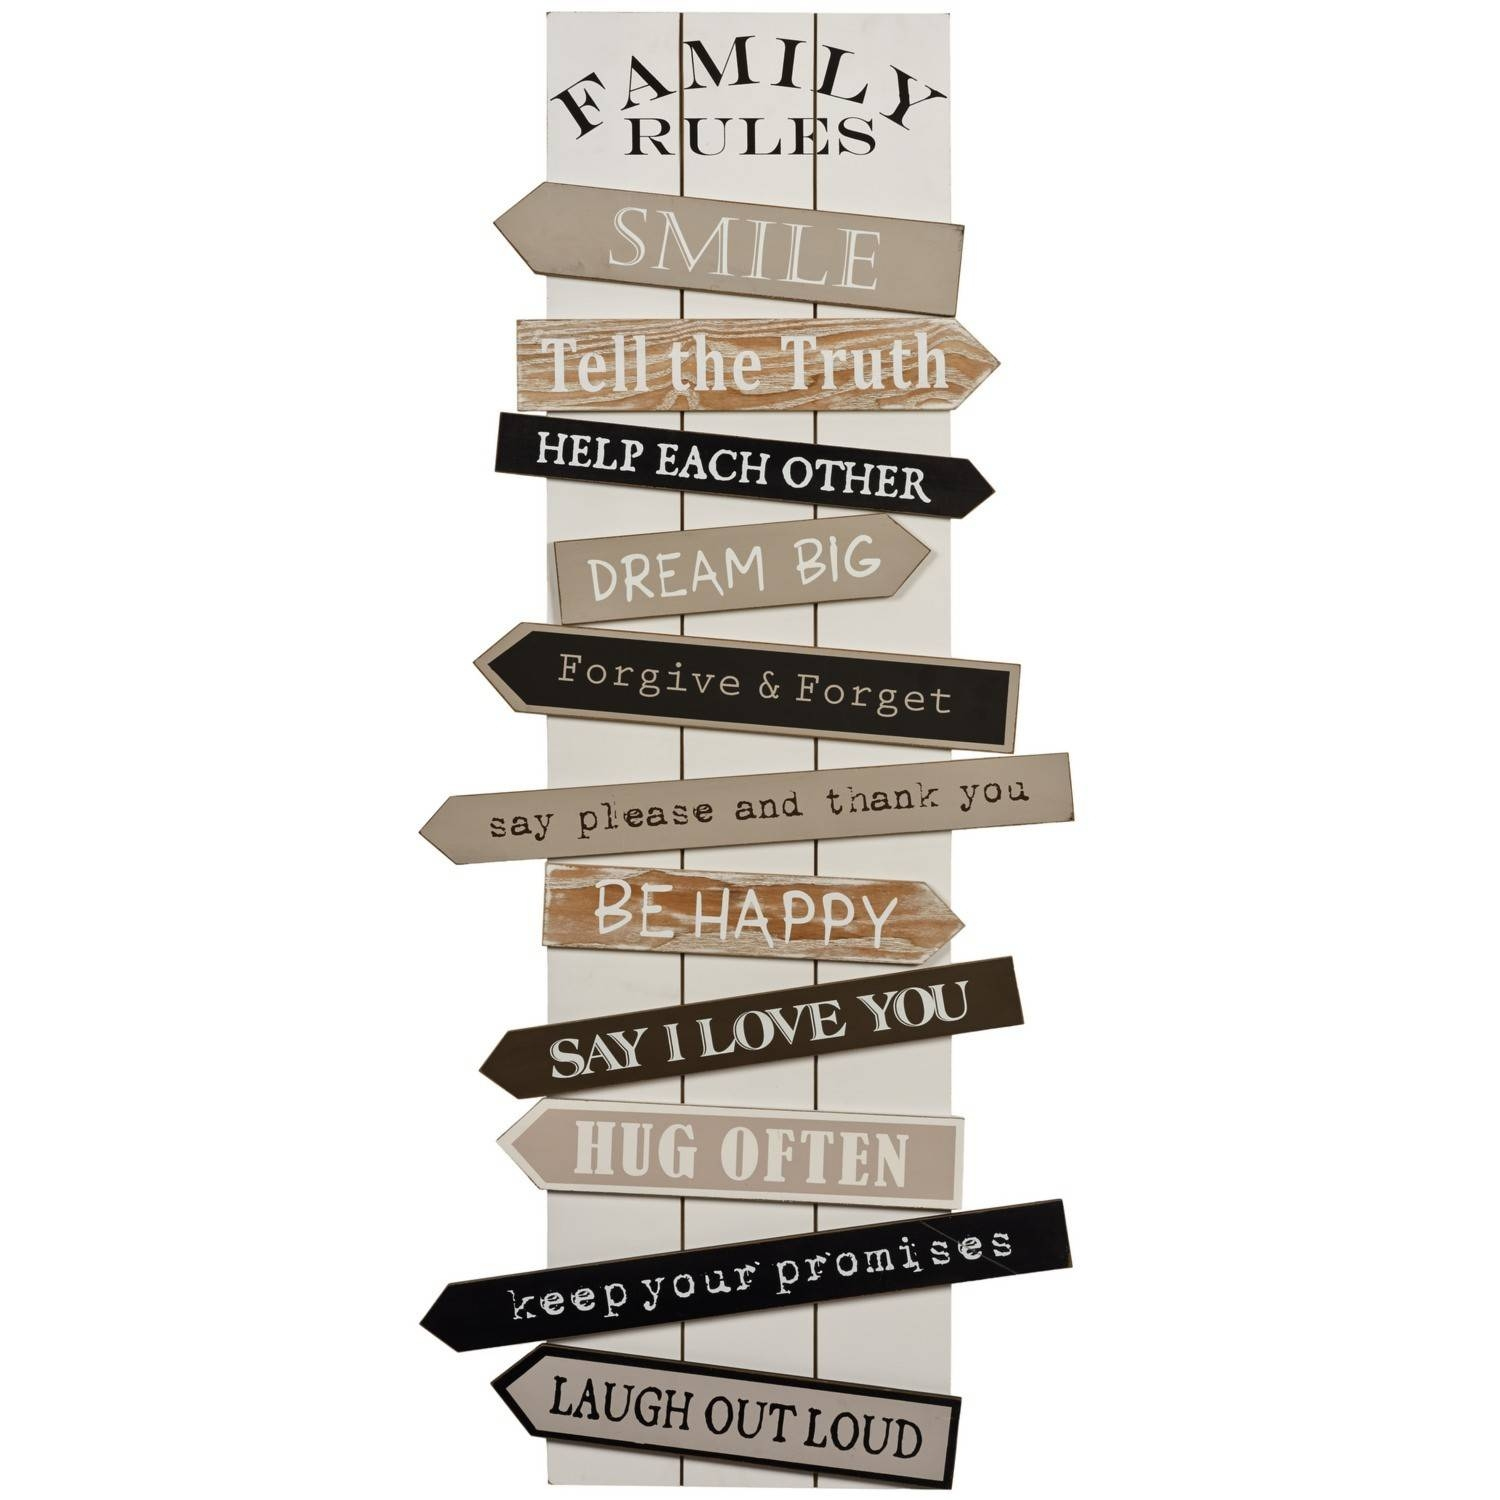 Wall Art Designs: Family Rules Wall Art Vintage Wall Art Wooden Within Most Recently Released Wooden Words Wall Art (View 10 of 30)